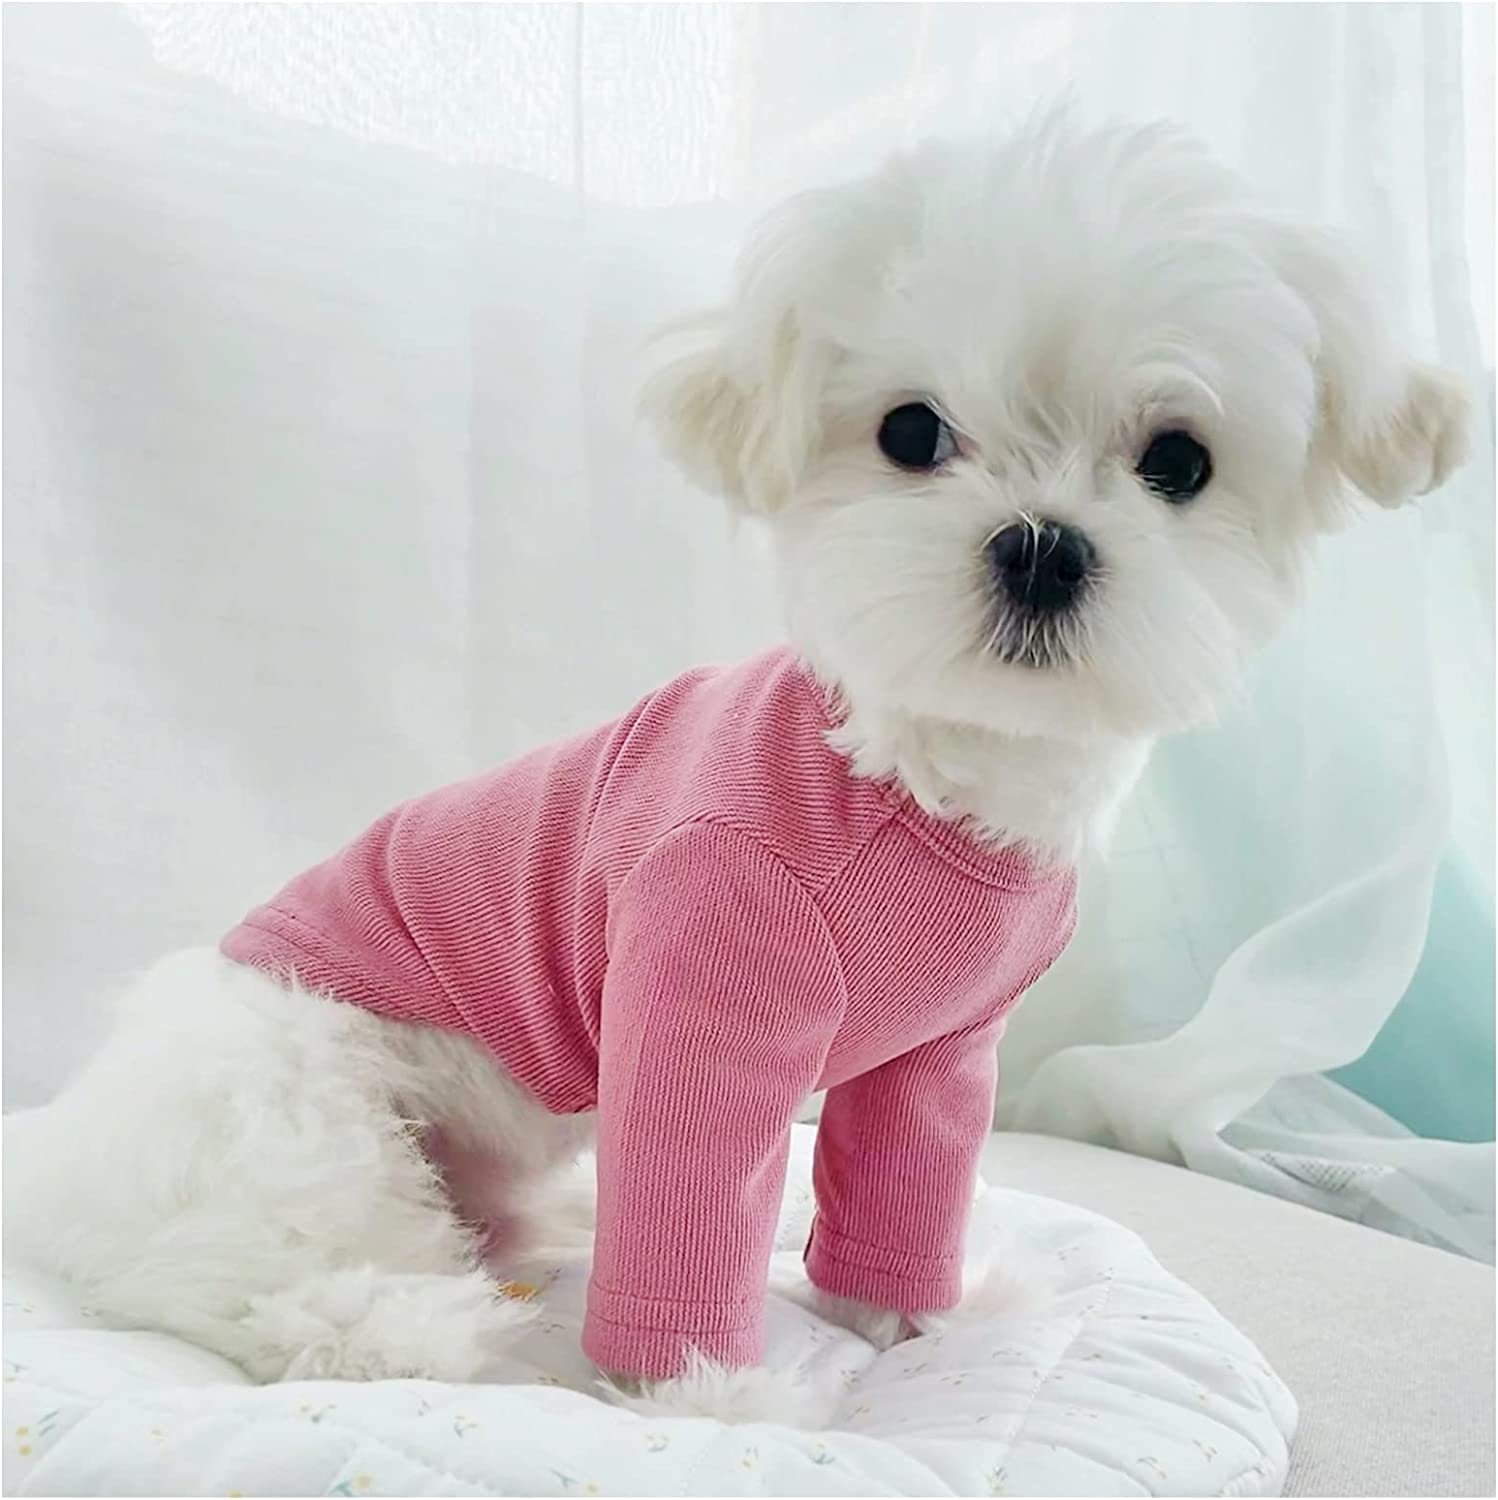 Loyanyy Dog Shirts for Small OFFicial shop Pupp Cotton Pure Sweatshirt Max 45% OFF